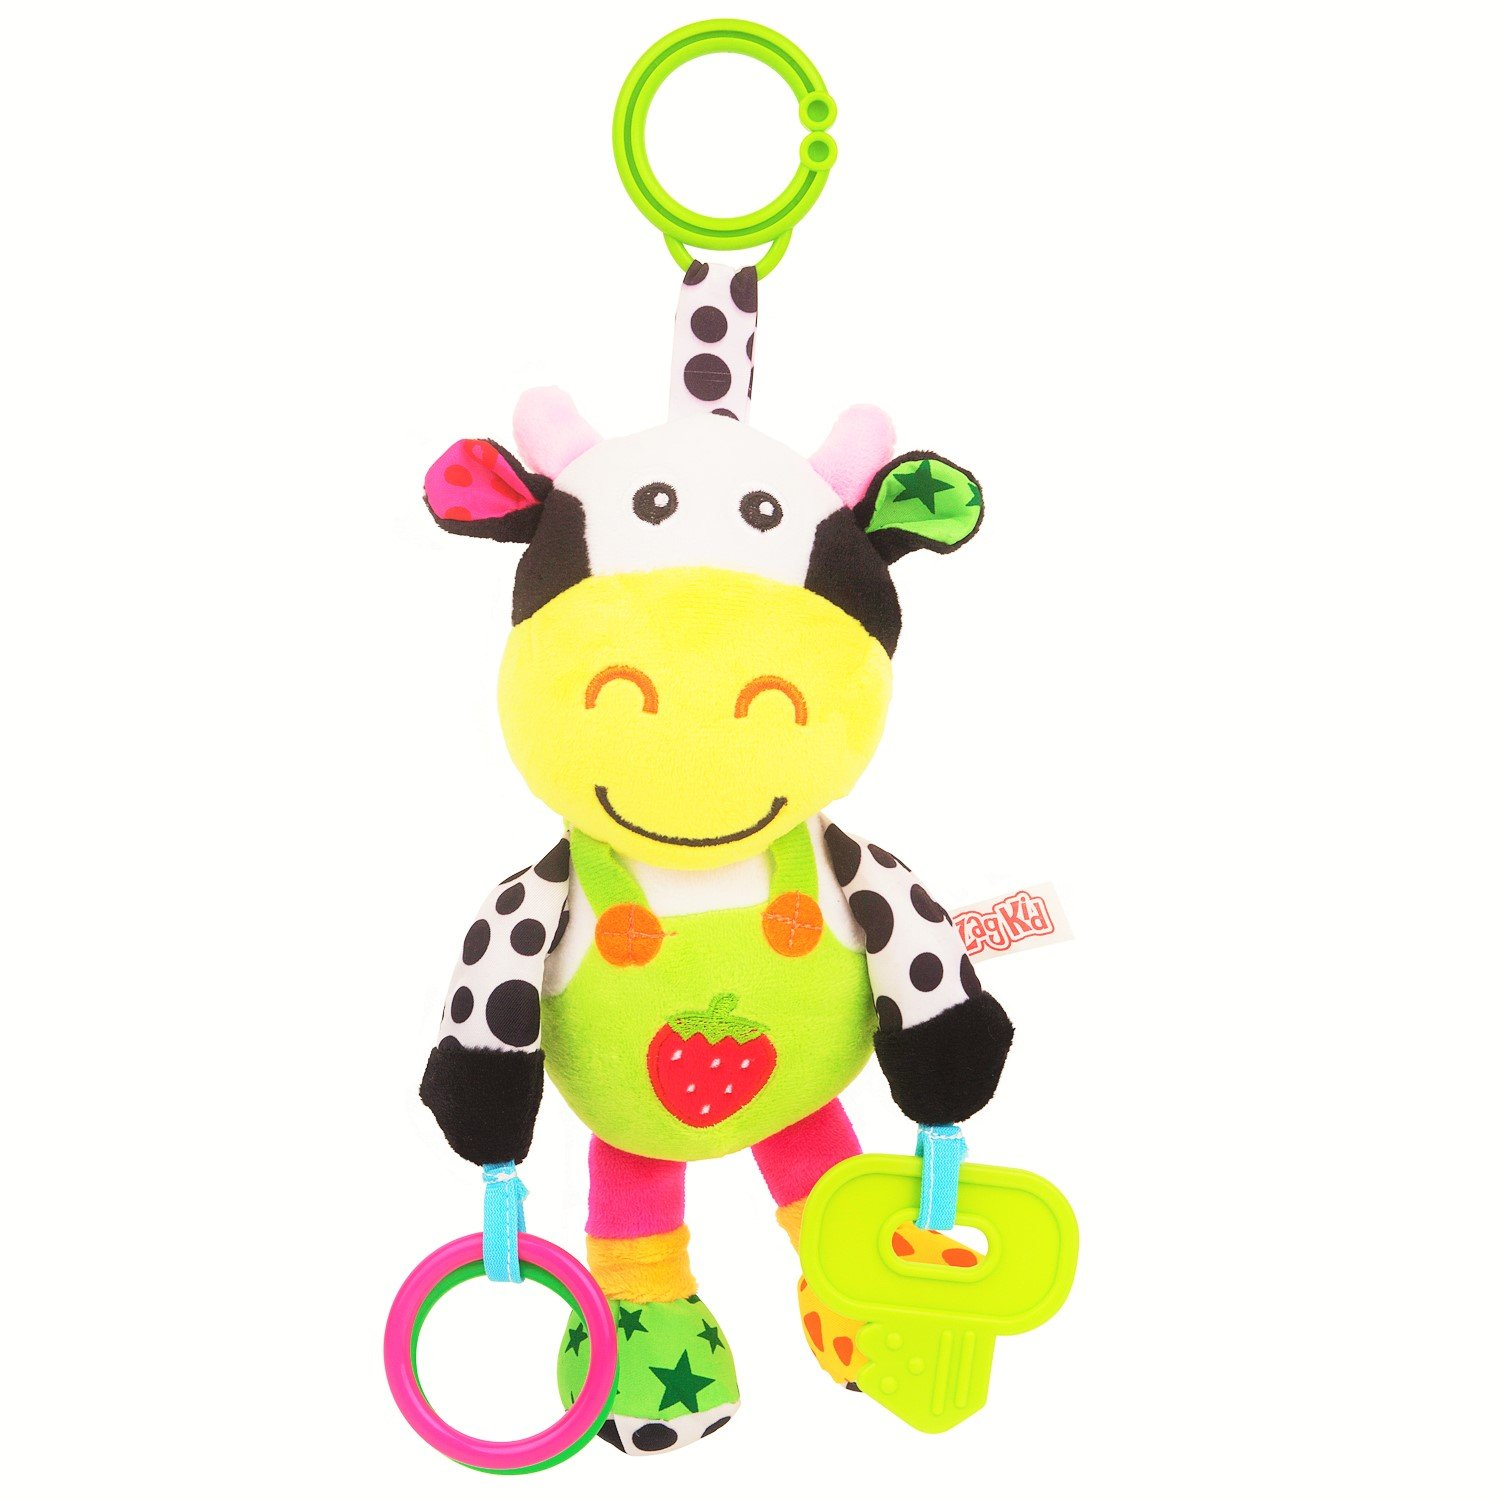 Amazon Musical Cow Soft Plush Baby Toy Rattle with Teether by